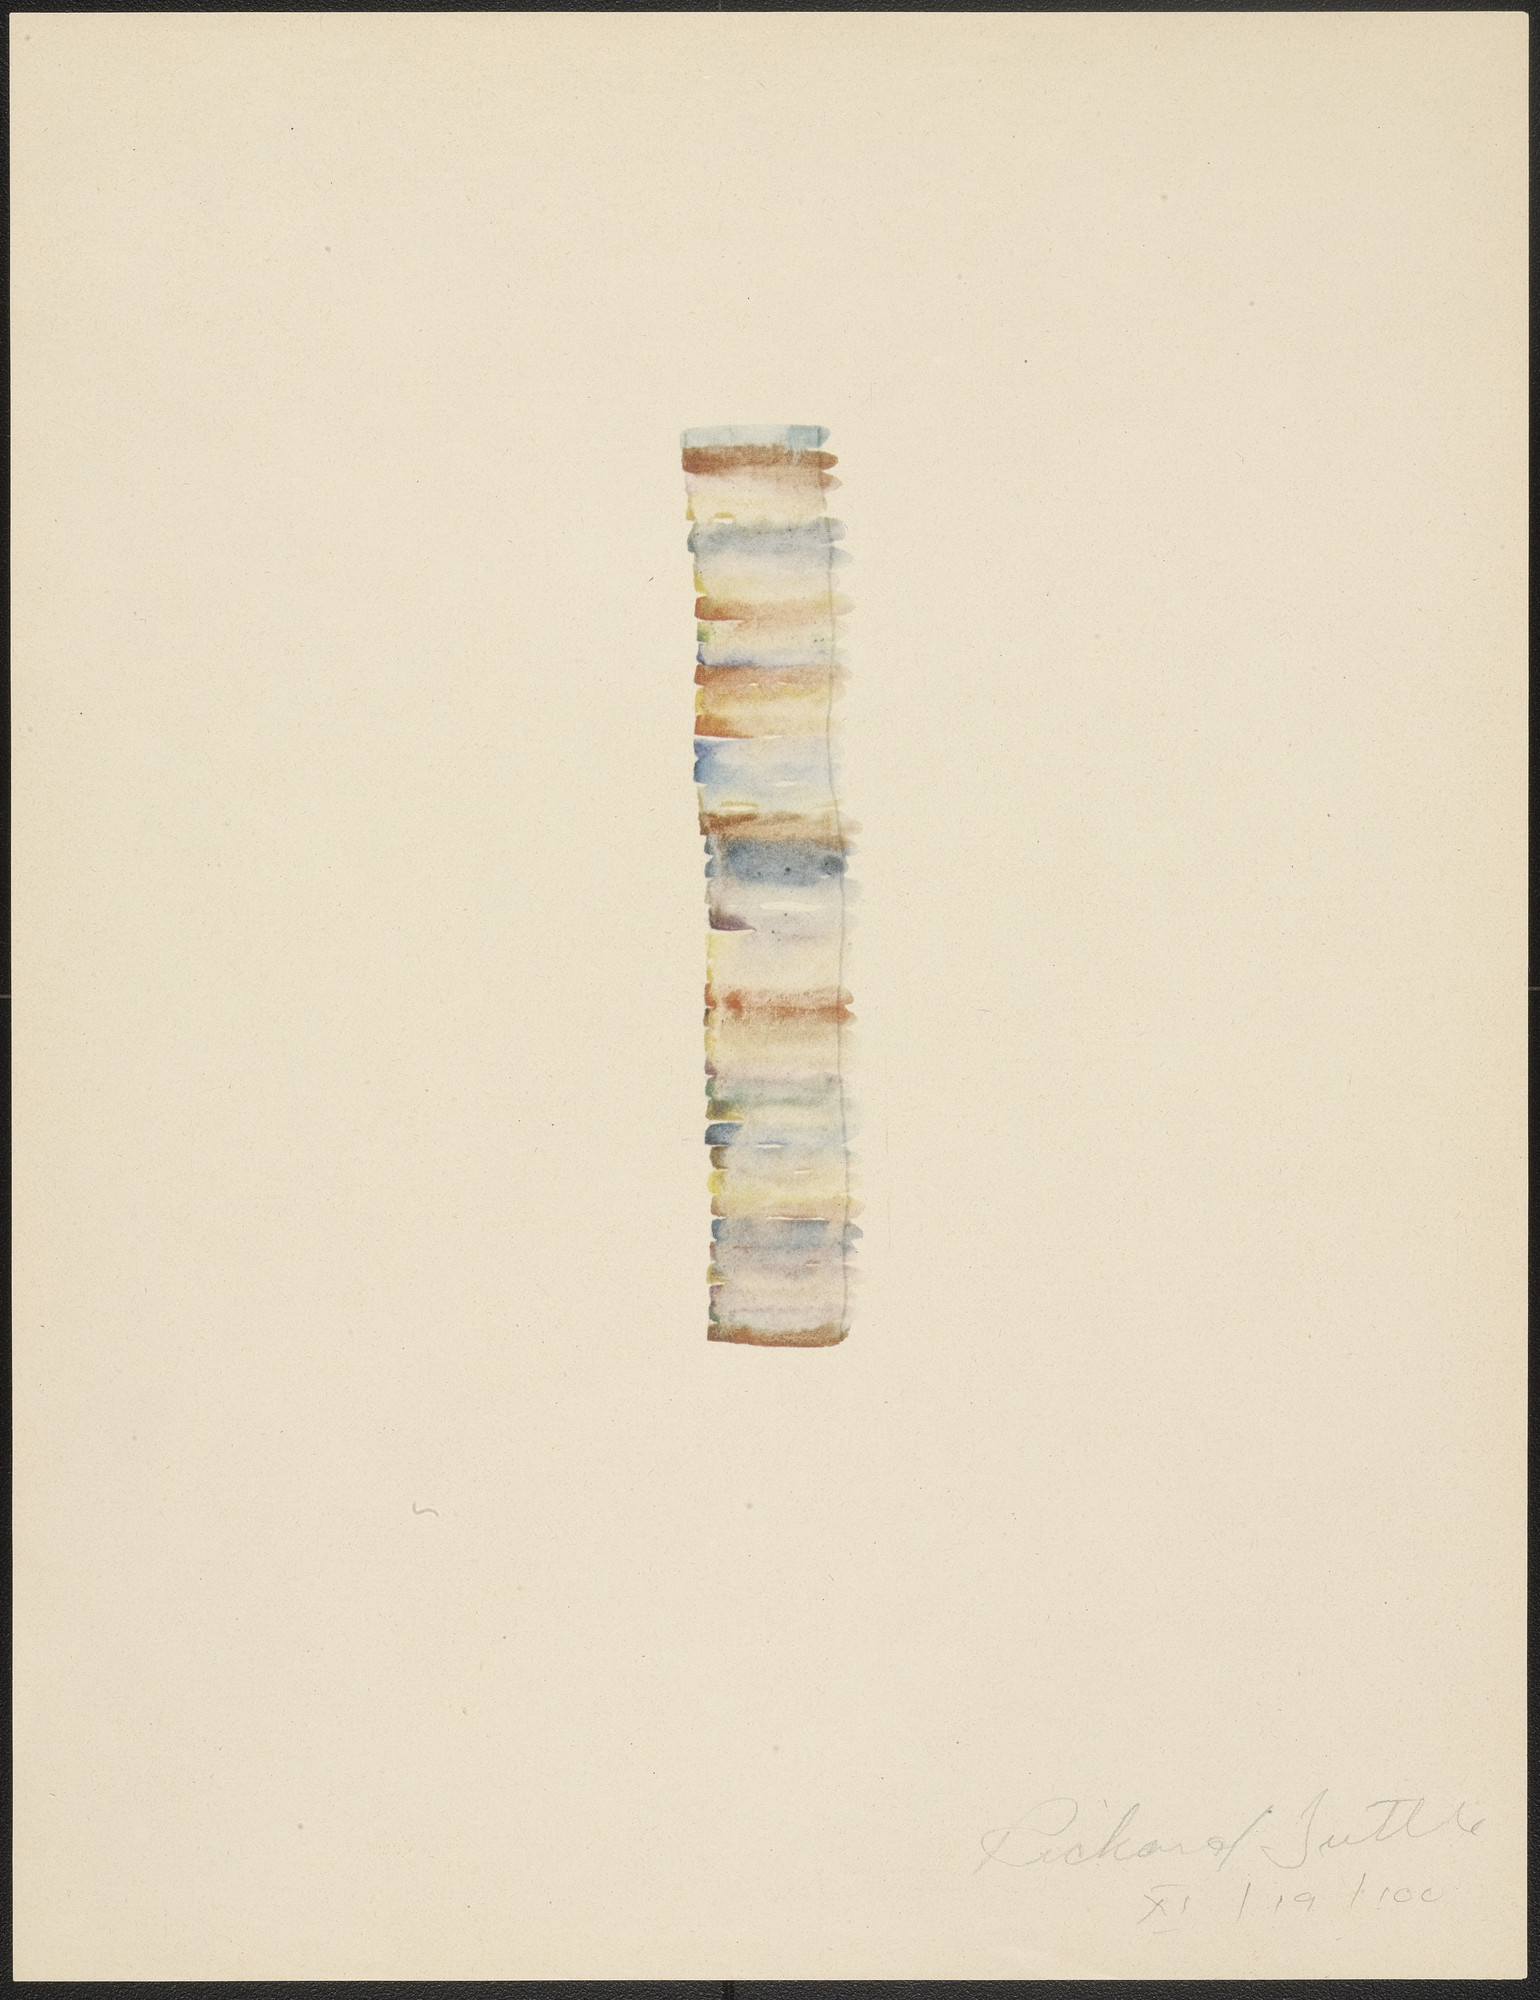 Richard Tuttle. XI from Stacked Color Drawings, 1971. 1975